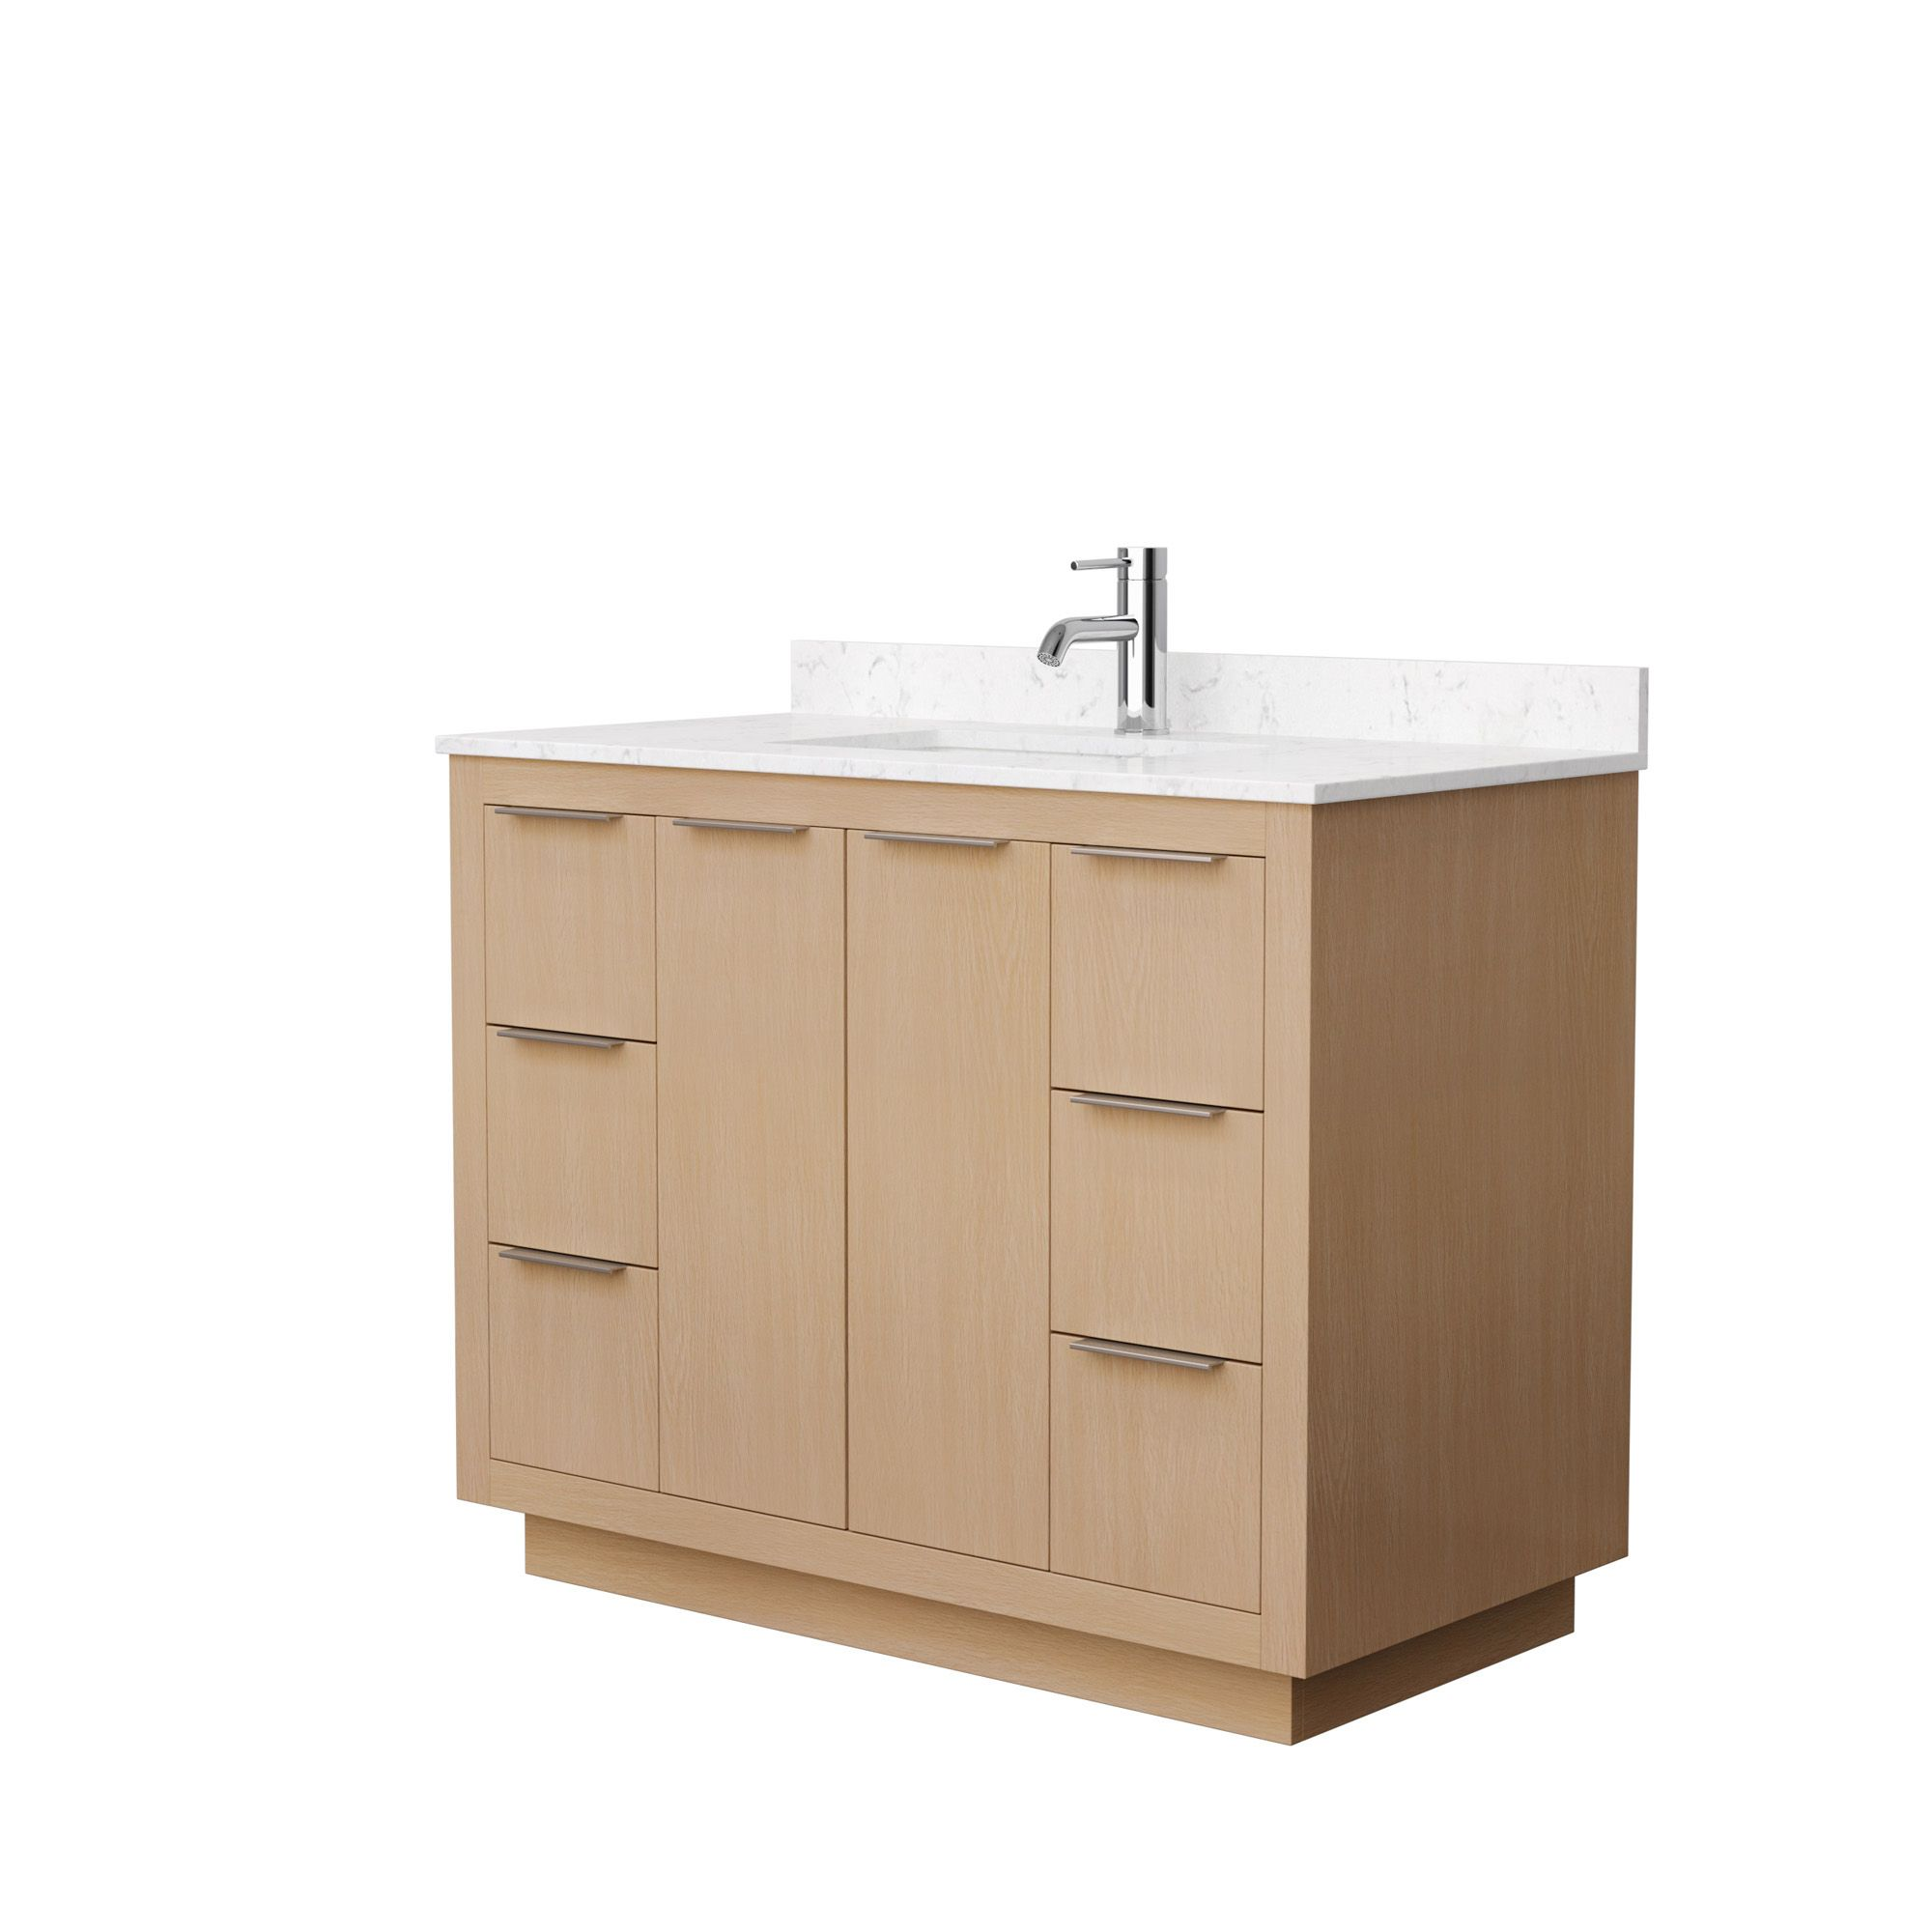 "42"" Single Bathroom Vanity in Light Straw with Countertop and Hardware Options"